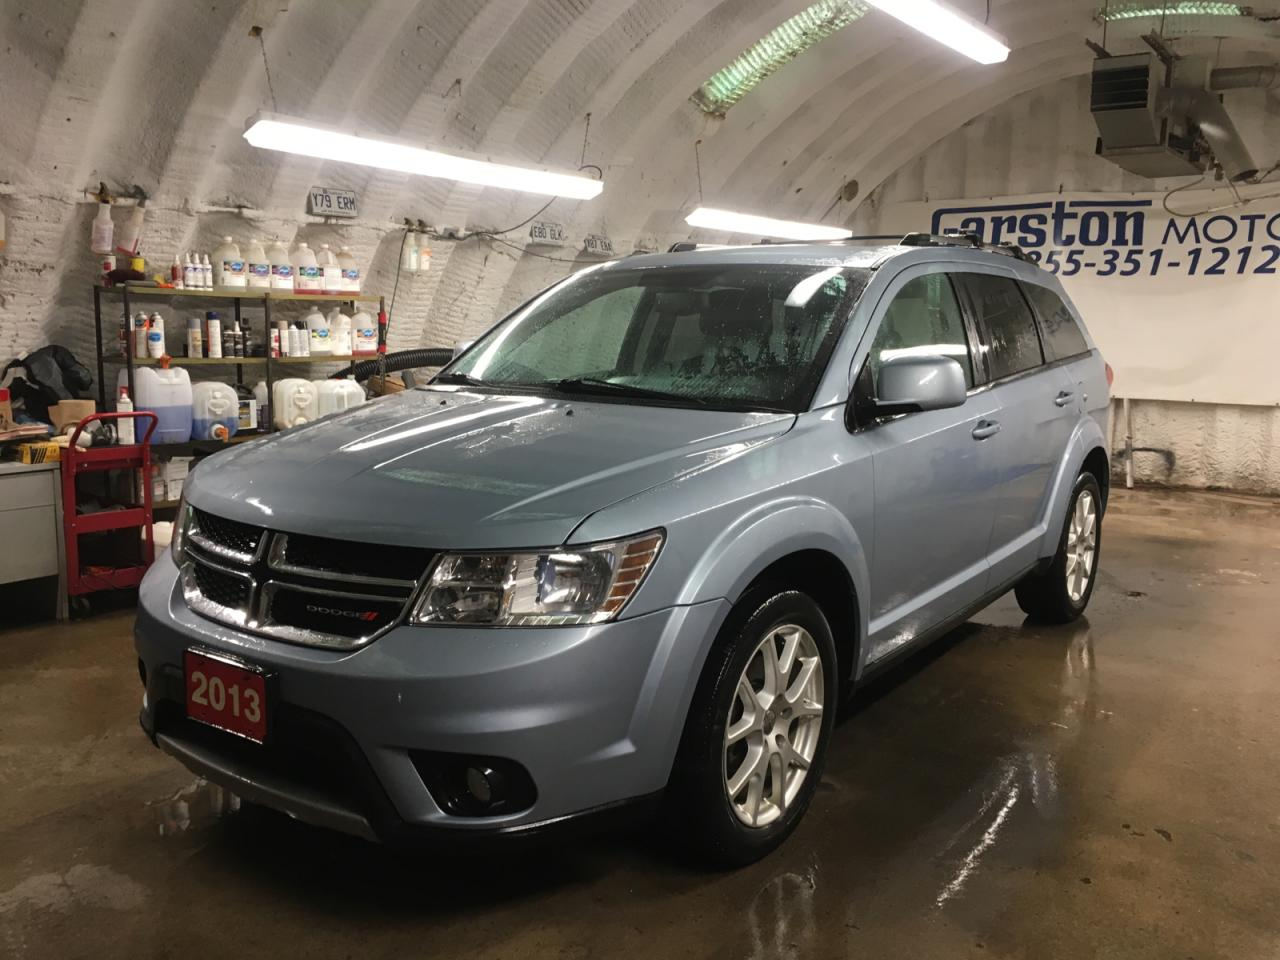 Used 2013 Dodge Journey CREW*U CONNECT PHONE*Uconnect 8.4 inch touch